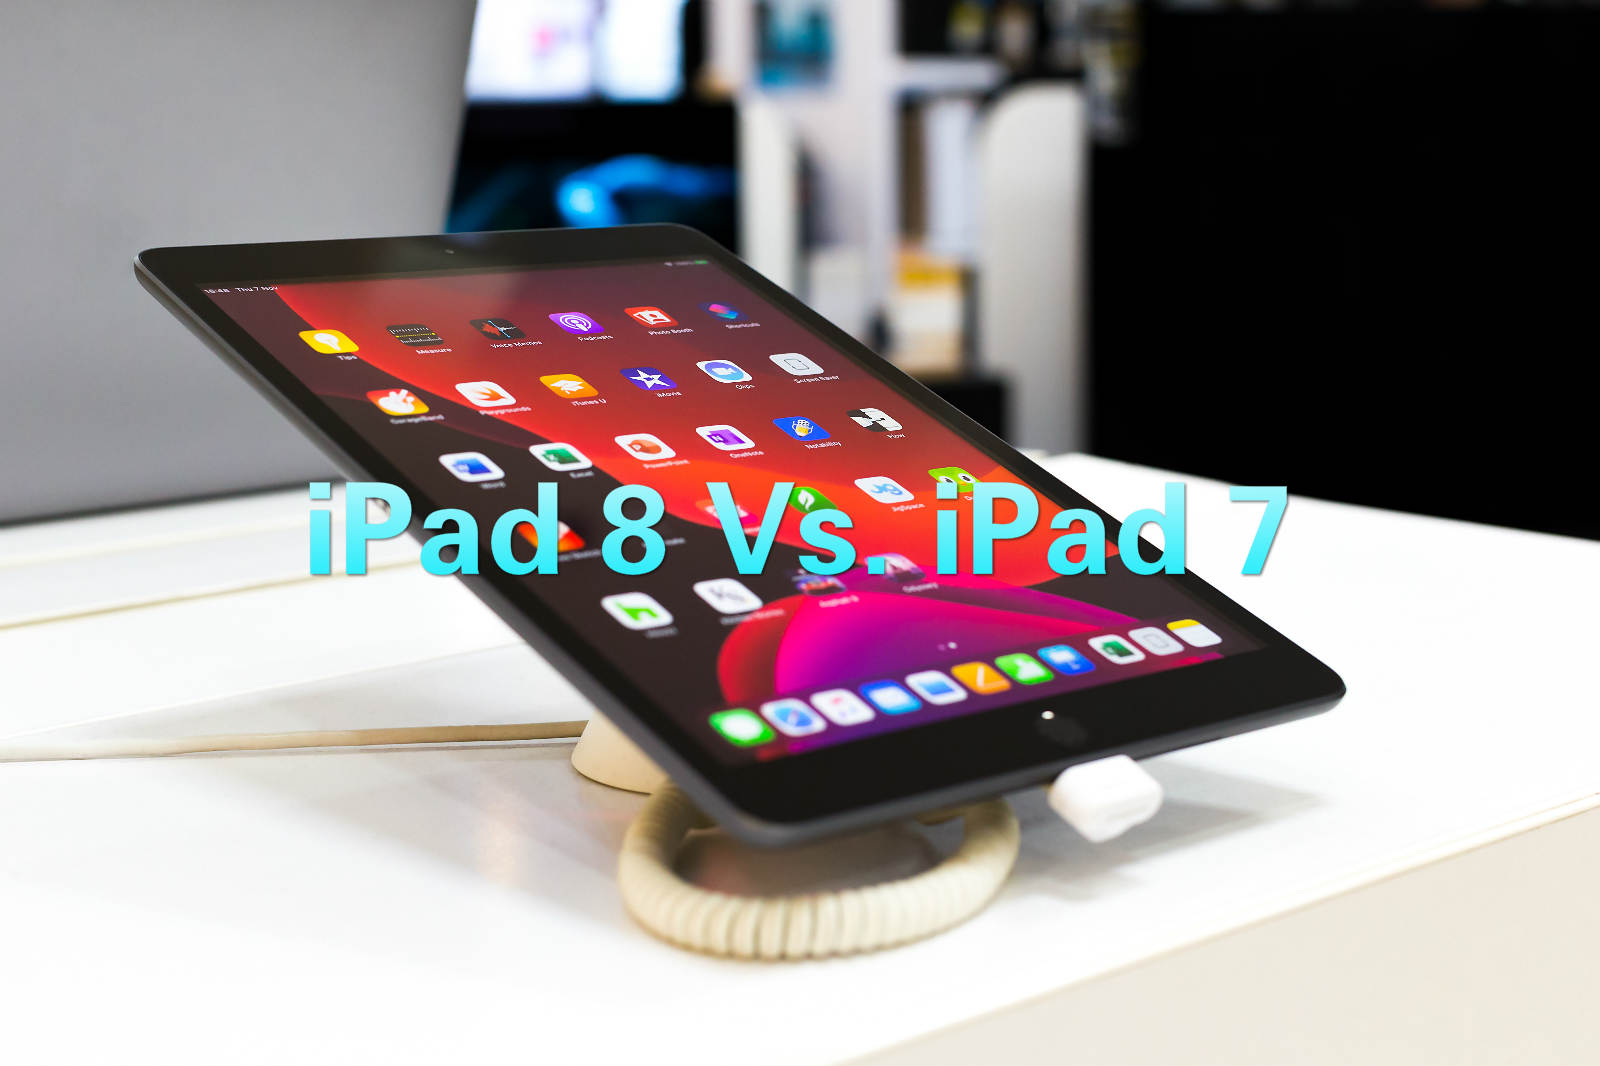 iPad 8 Vs. iPad 7: What's the Difference and Should You ...